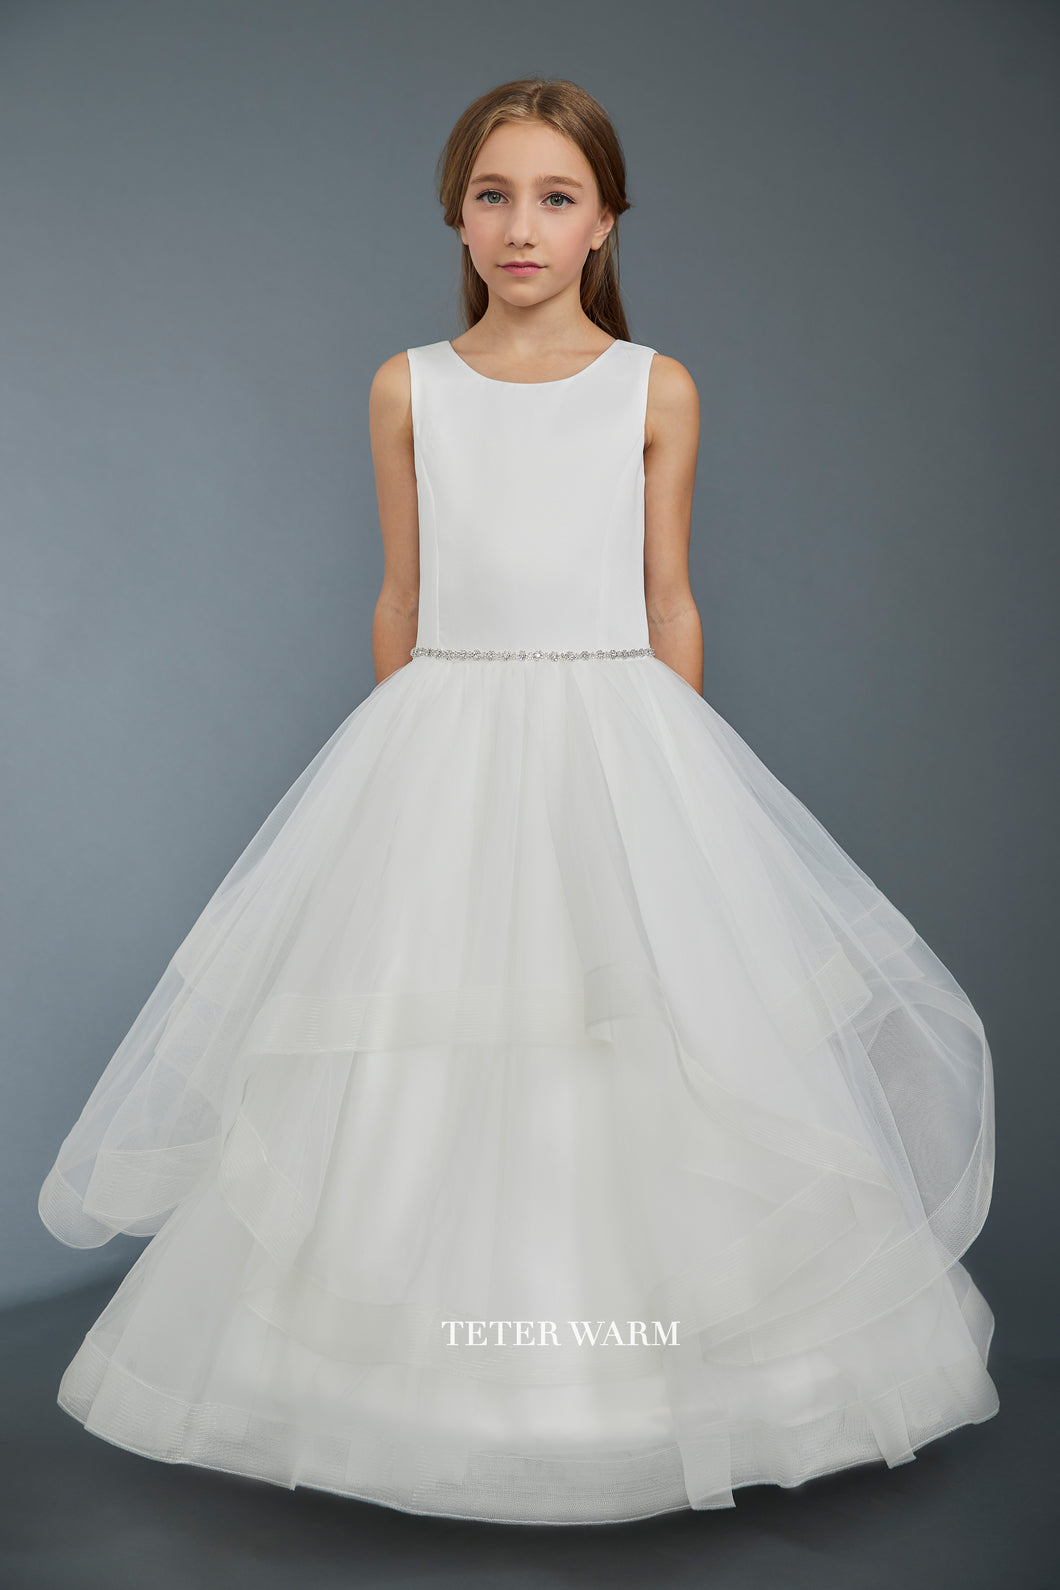 1401 Teter Warm Communion/ Flower Girl Dress